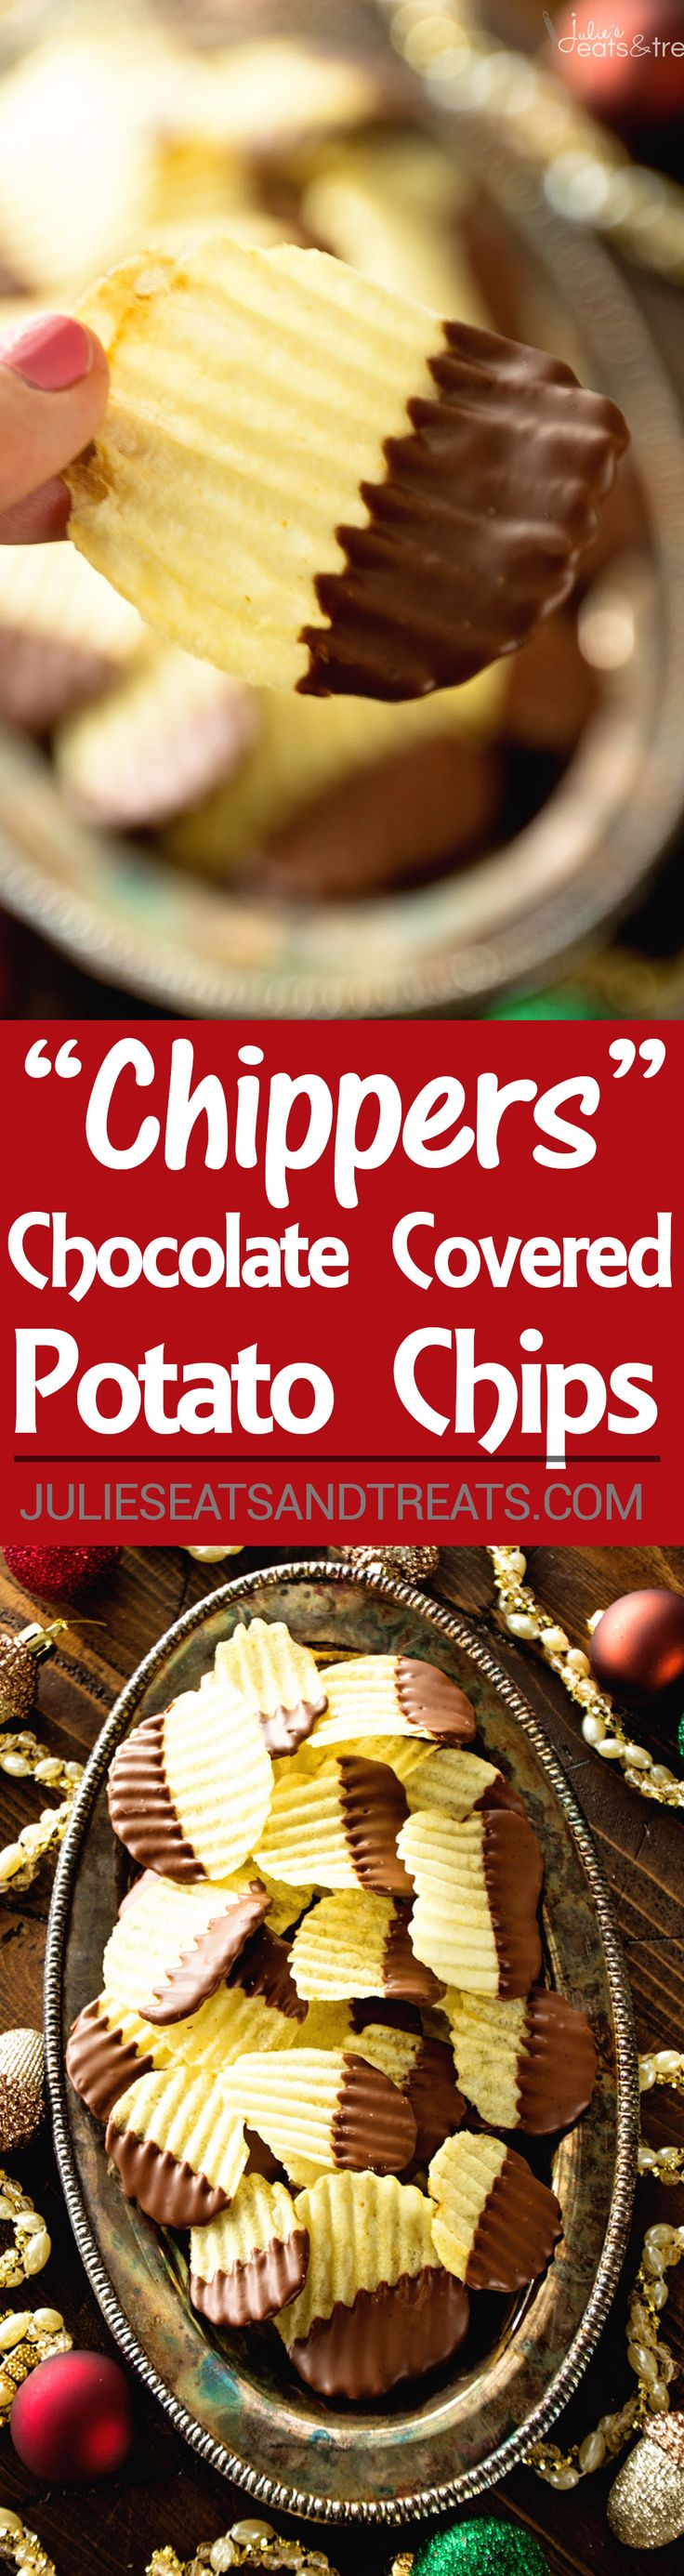 Chippers Recipe ~ These Chocolate Covered Potato Chips are the Perfect Sweet & Salty Combo! Quick, Easy Holiday Recipe Great for Christmas!